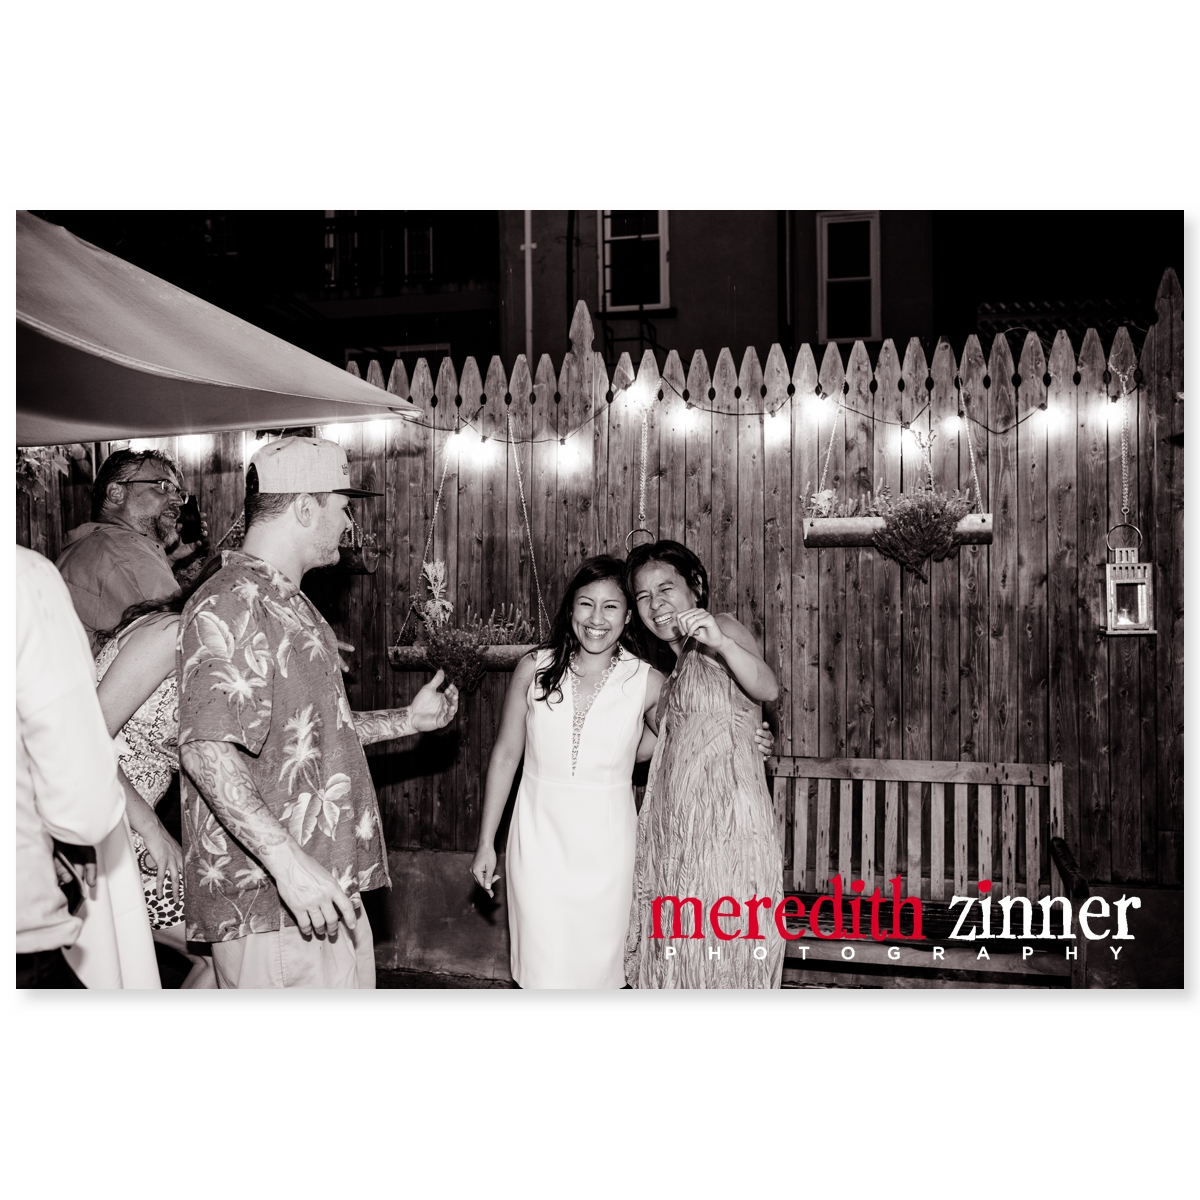 Meredith_Zinner_Photography_StilesCelebration_0449